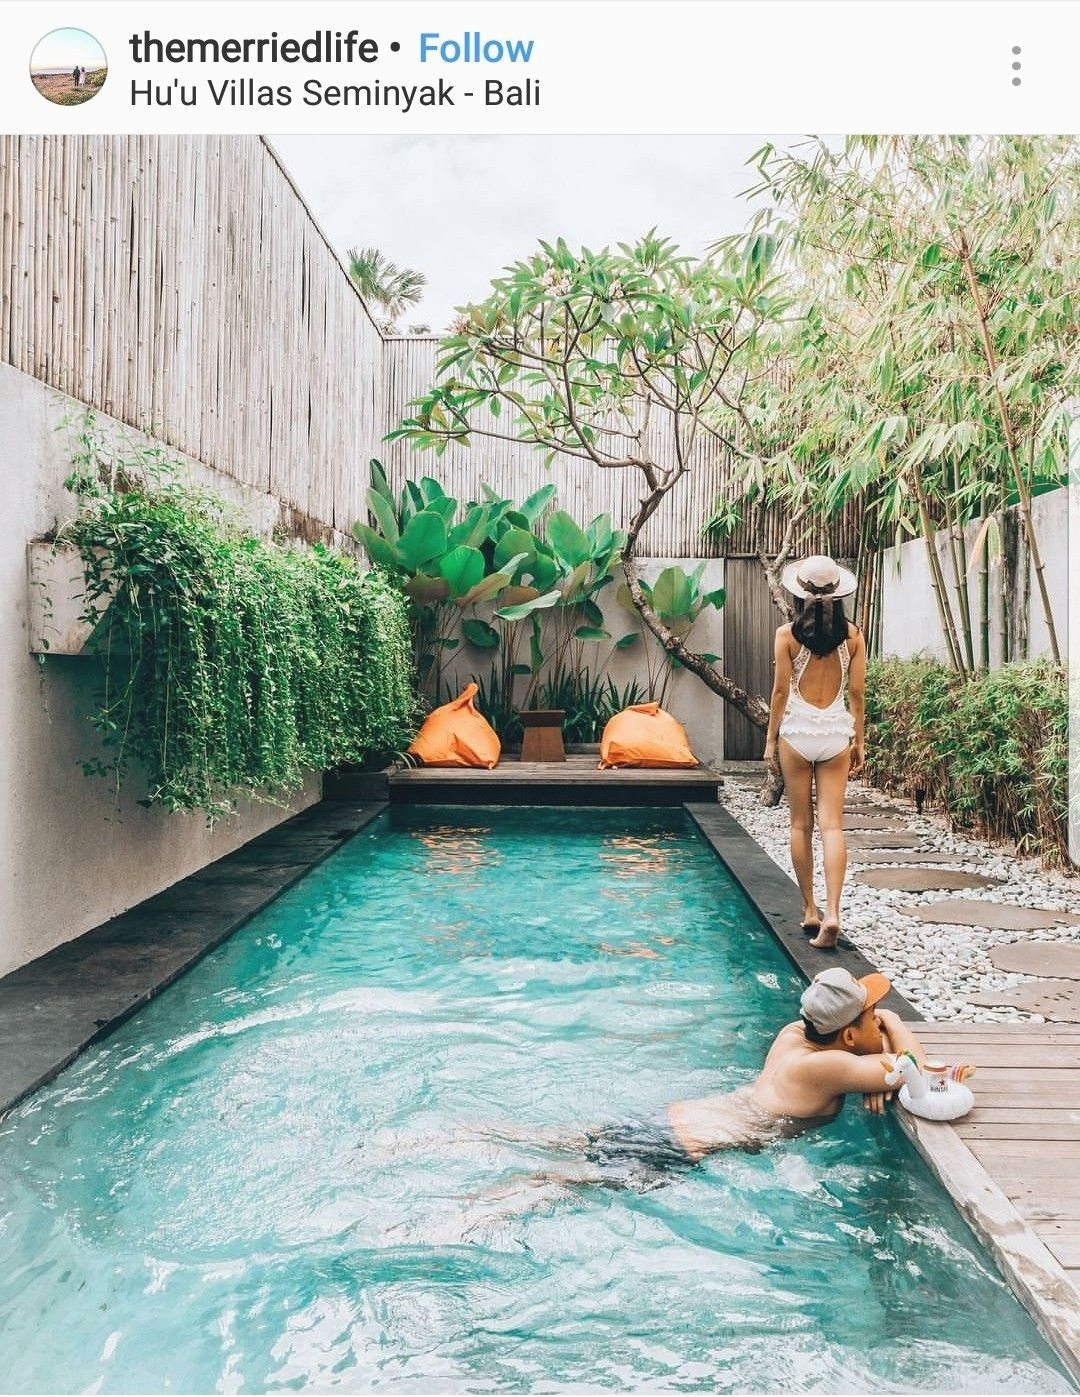 Backyard Pool Ideas Lounging By The Pool Along With Taking A